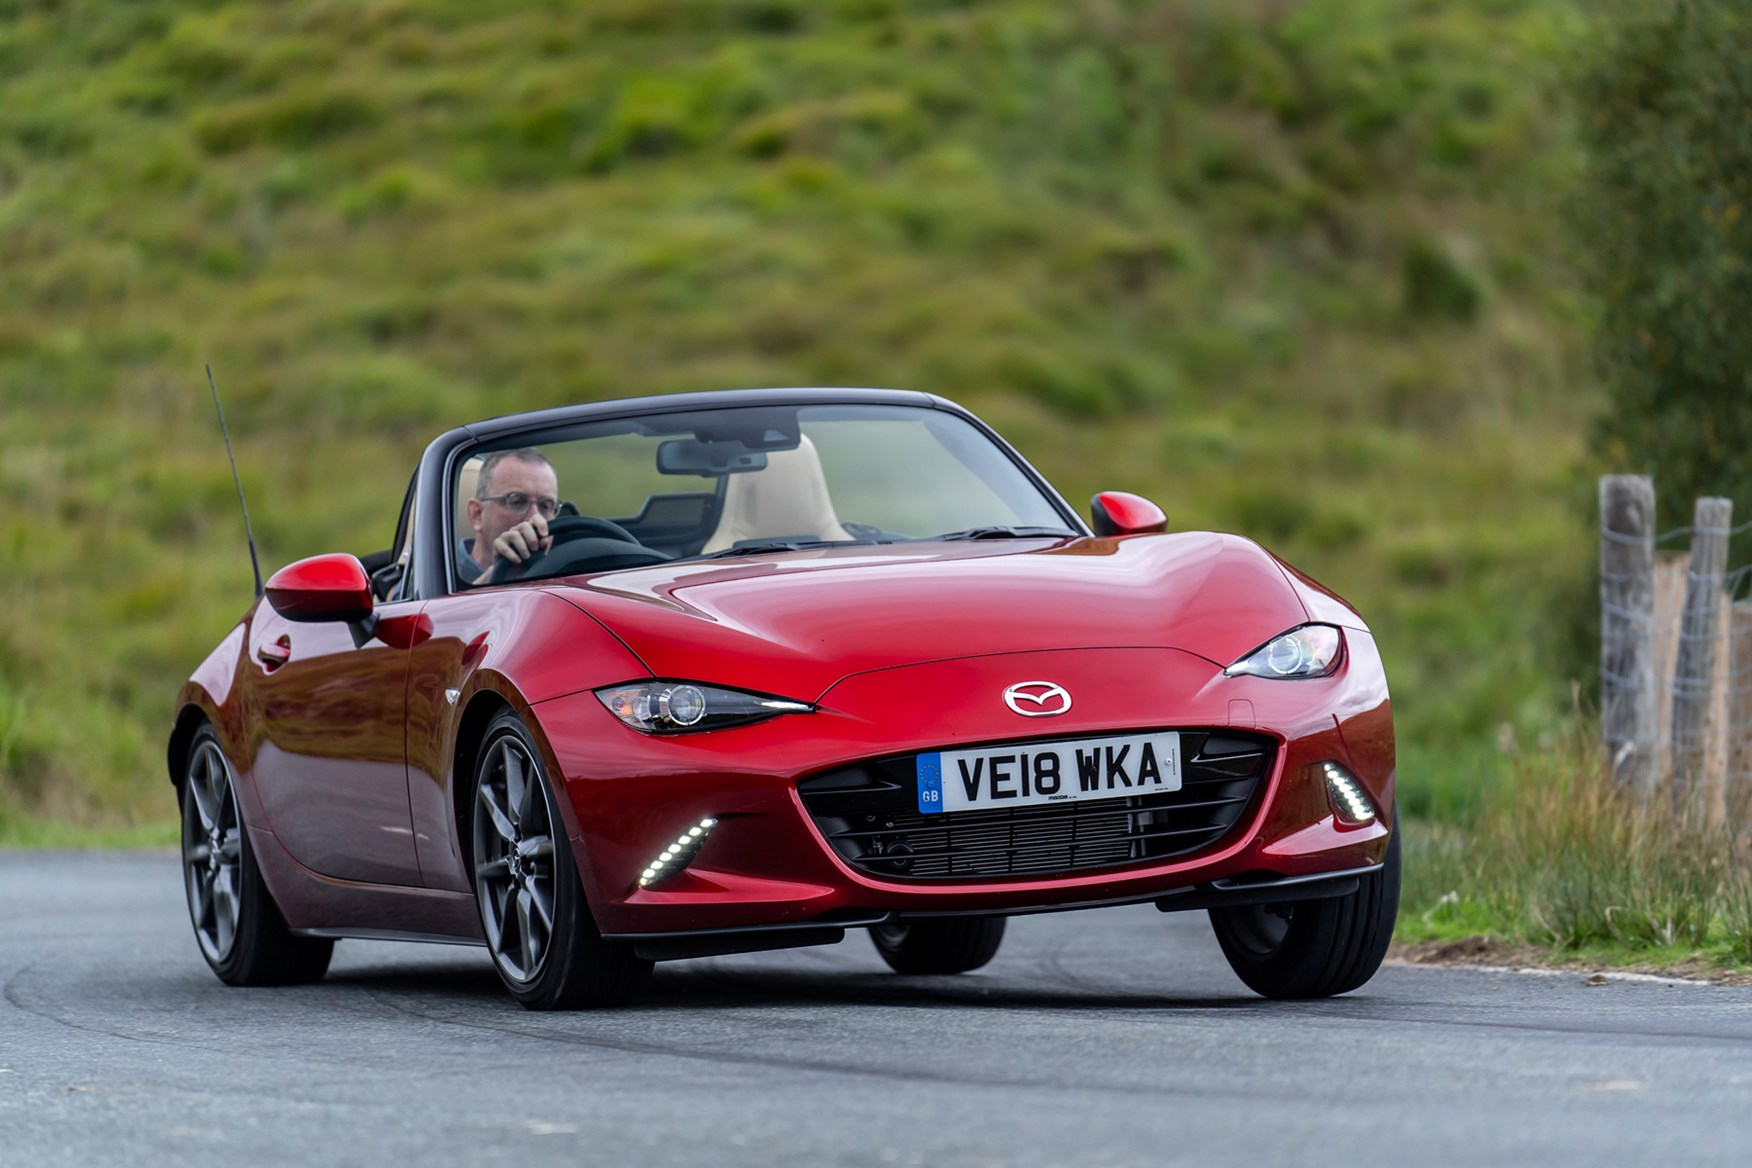 Mazda MX-5 red, roof open, driving front view